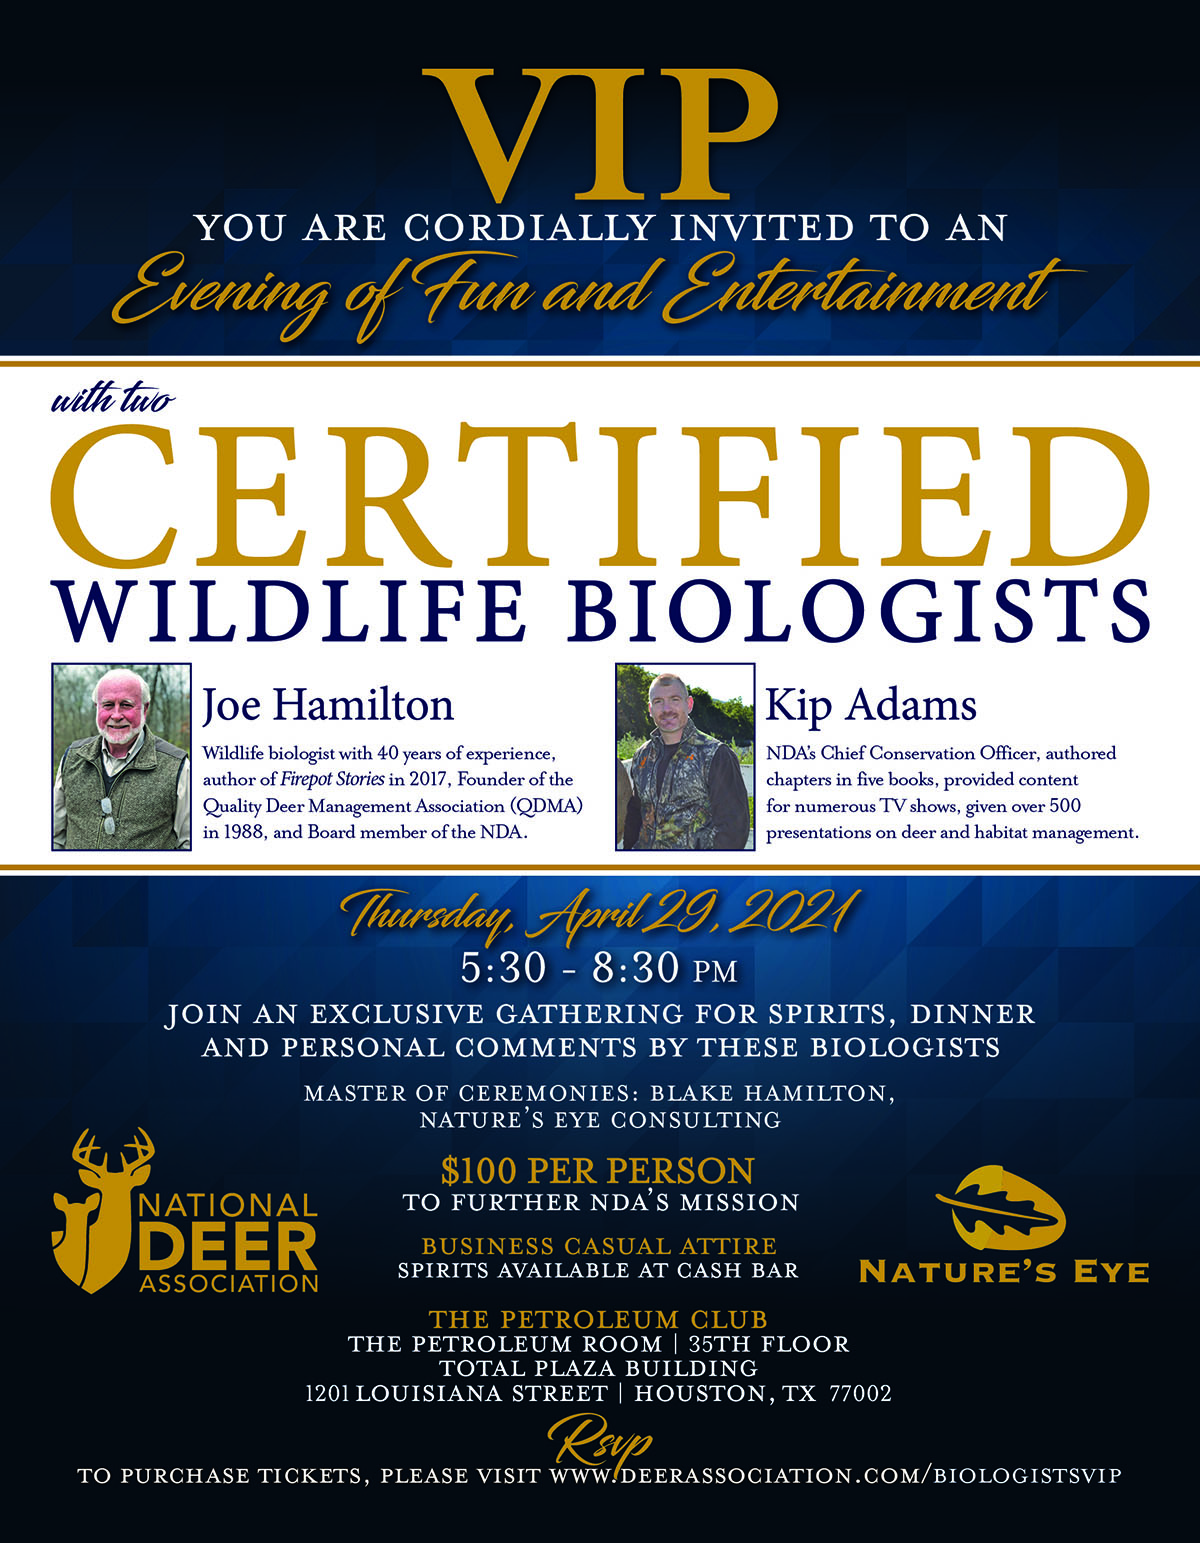 An Evening of Fun and Entertainment with Two Certified Wildlife Biologists @ The Petroleum Club